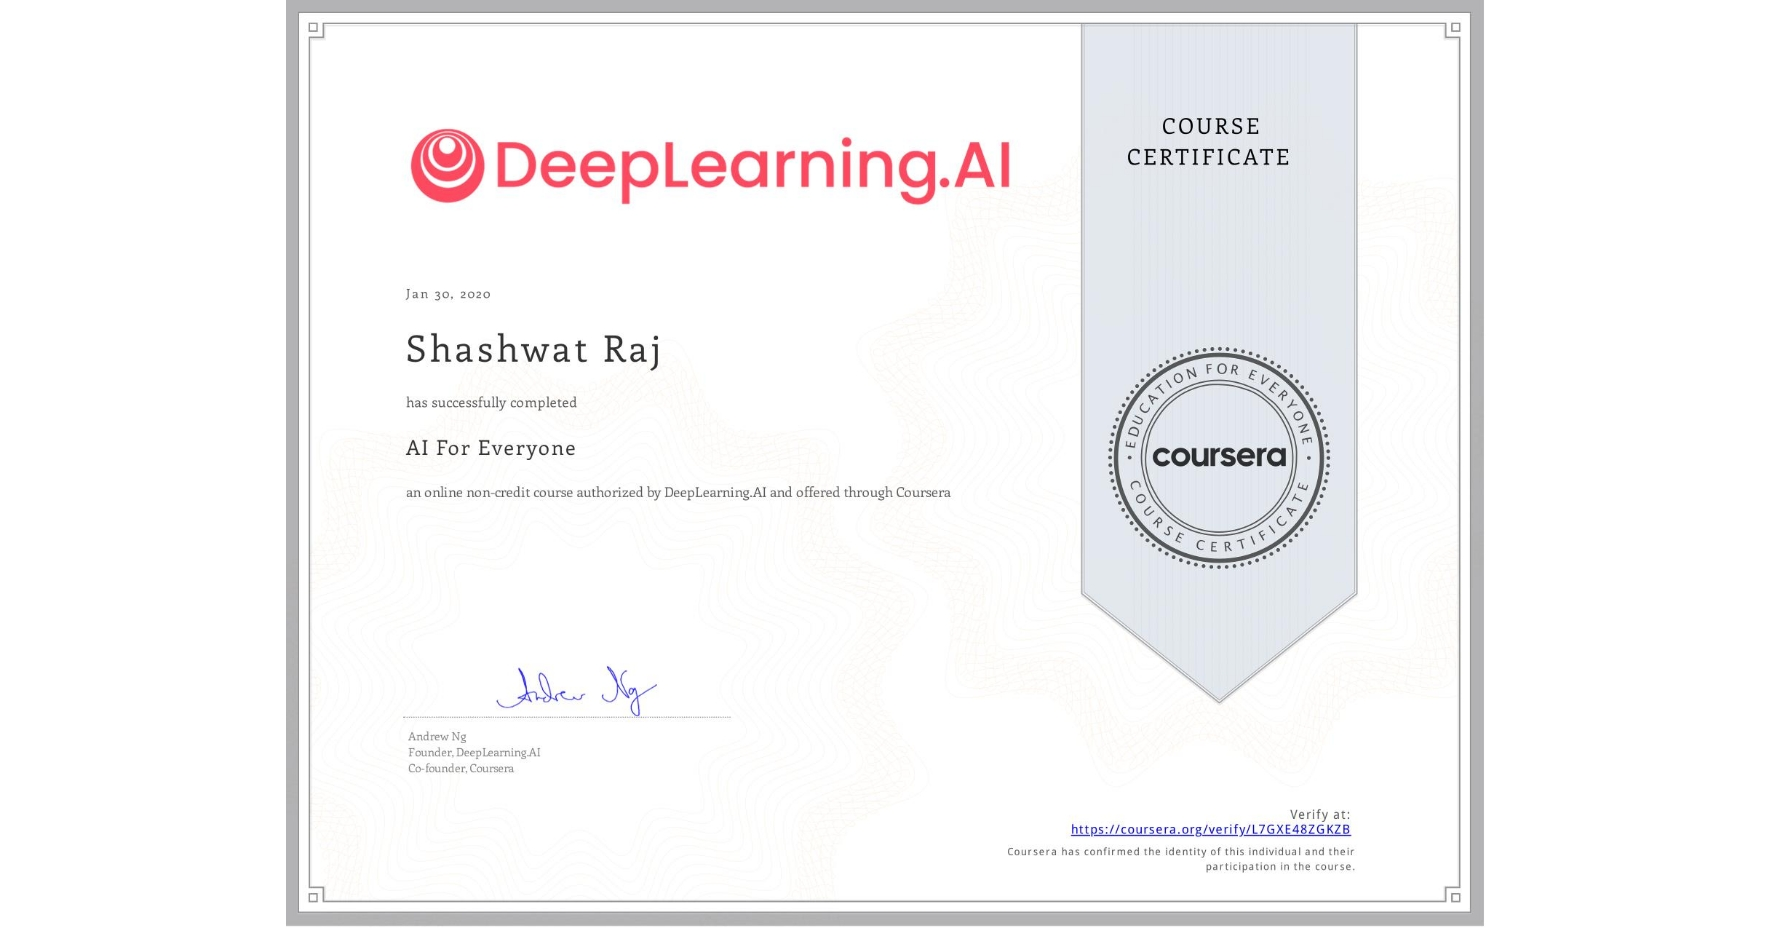 View certificate for Shashwat Raj, AI For Everyone, an online non-credit course authorized by DeepLearning.AI and offered through Coursera